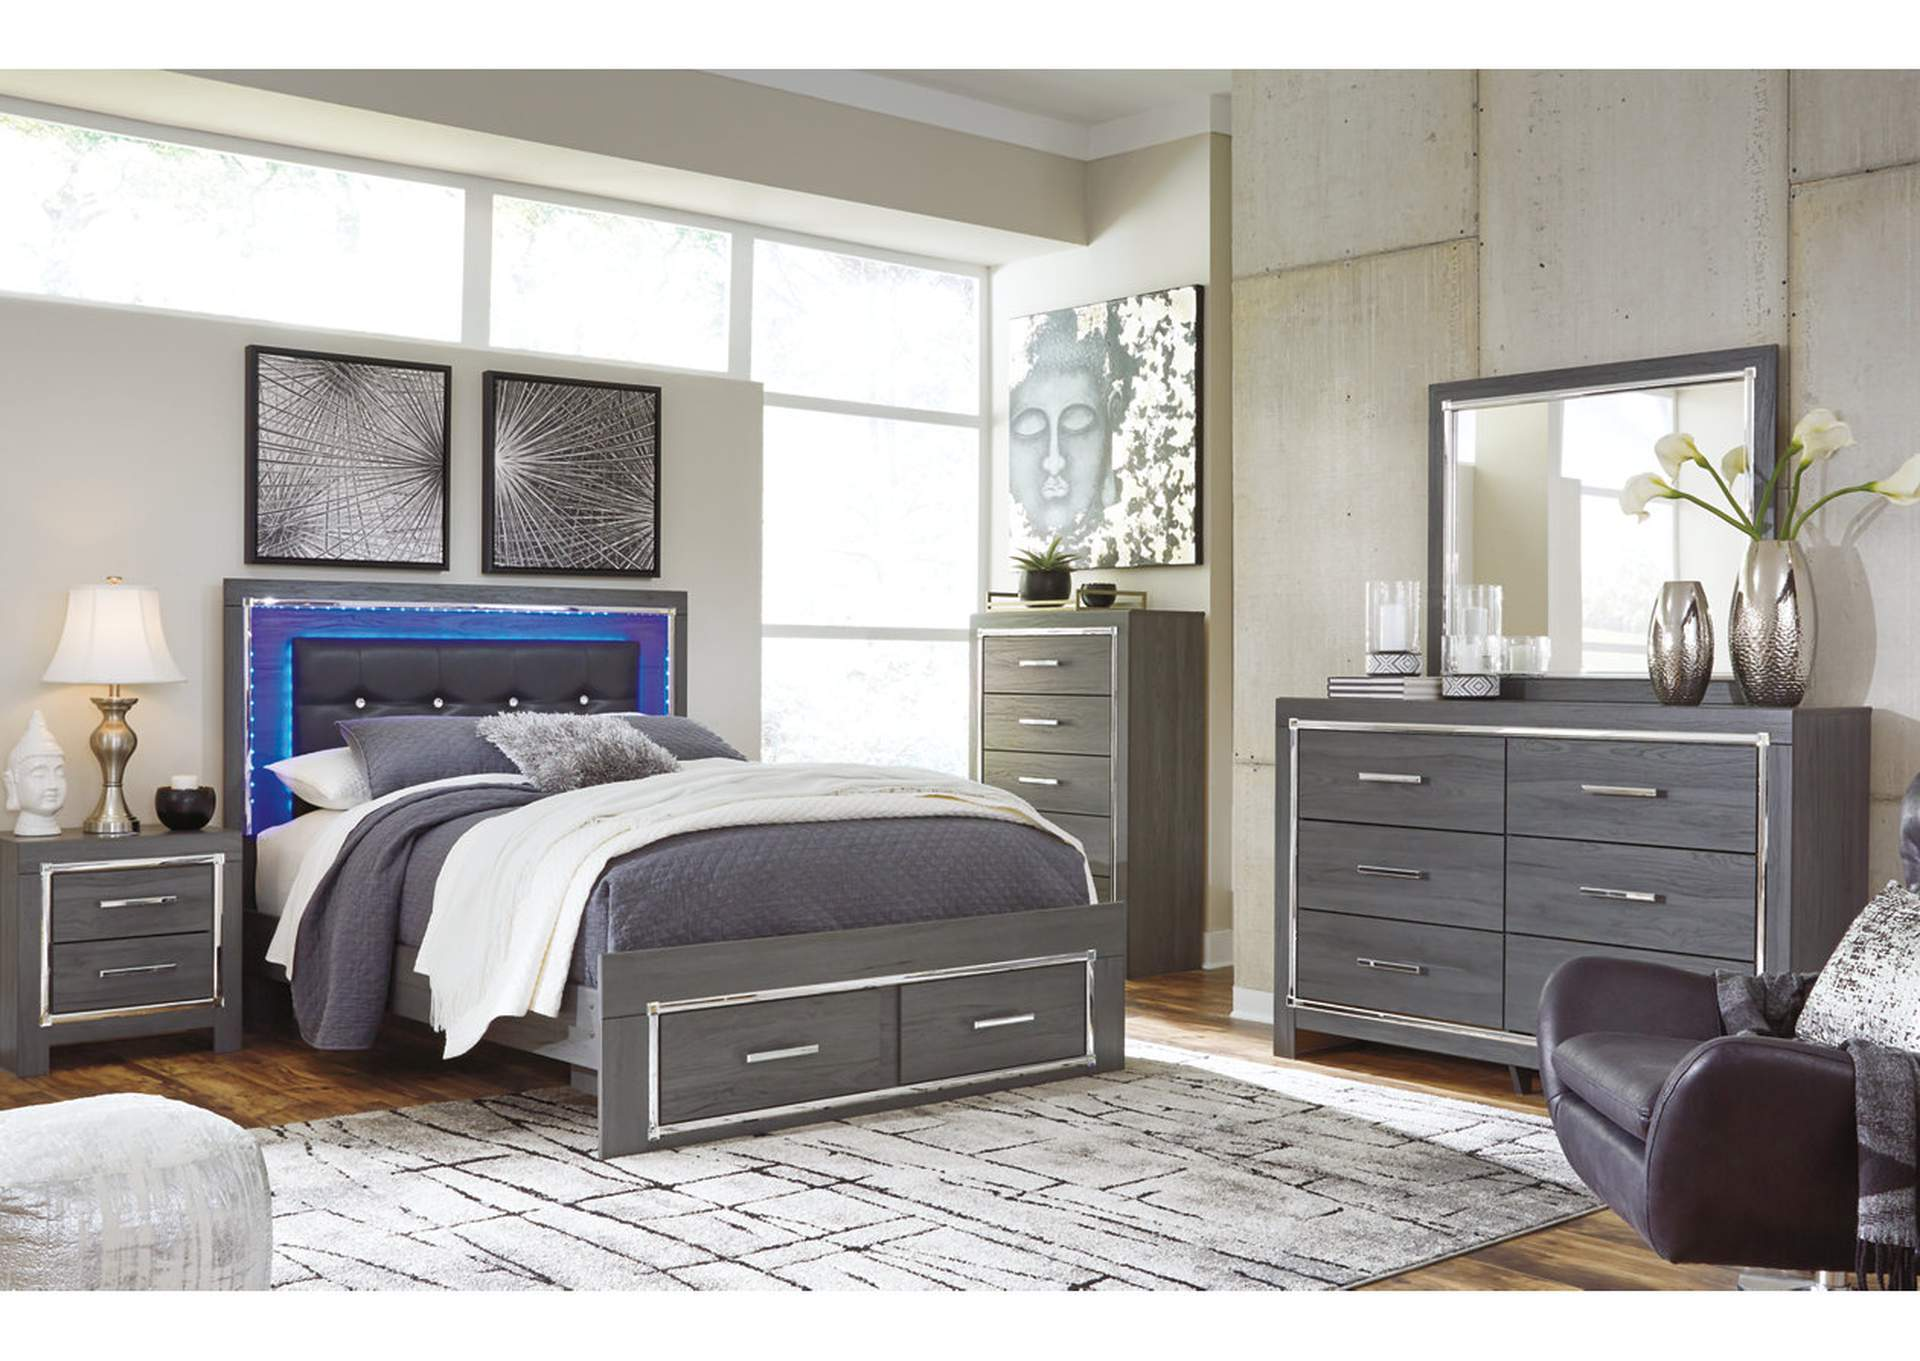 Lodanna Gray Queen Storage Bed w/Dresser & Mirror,Signature Design By Ashley